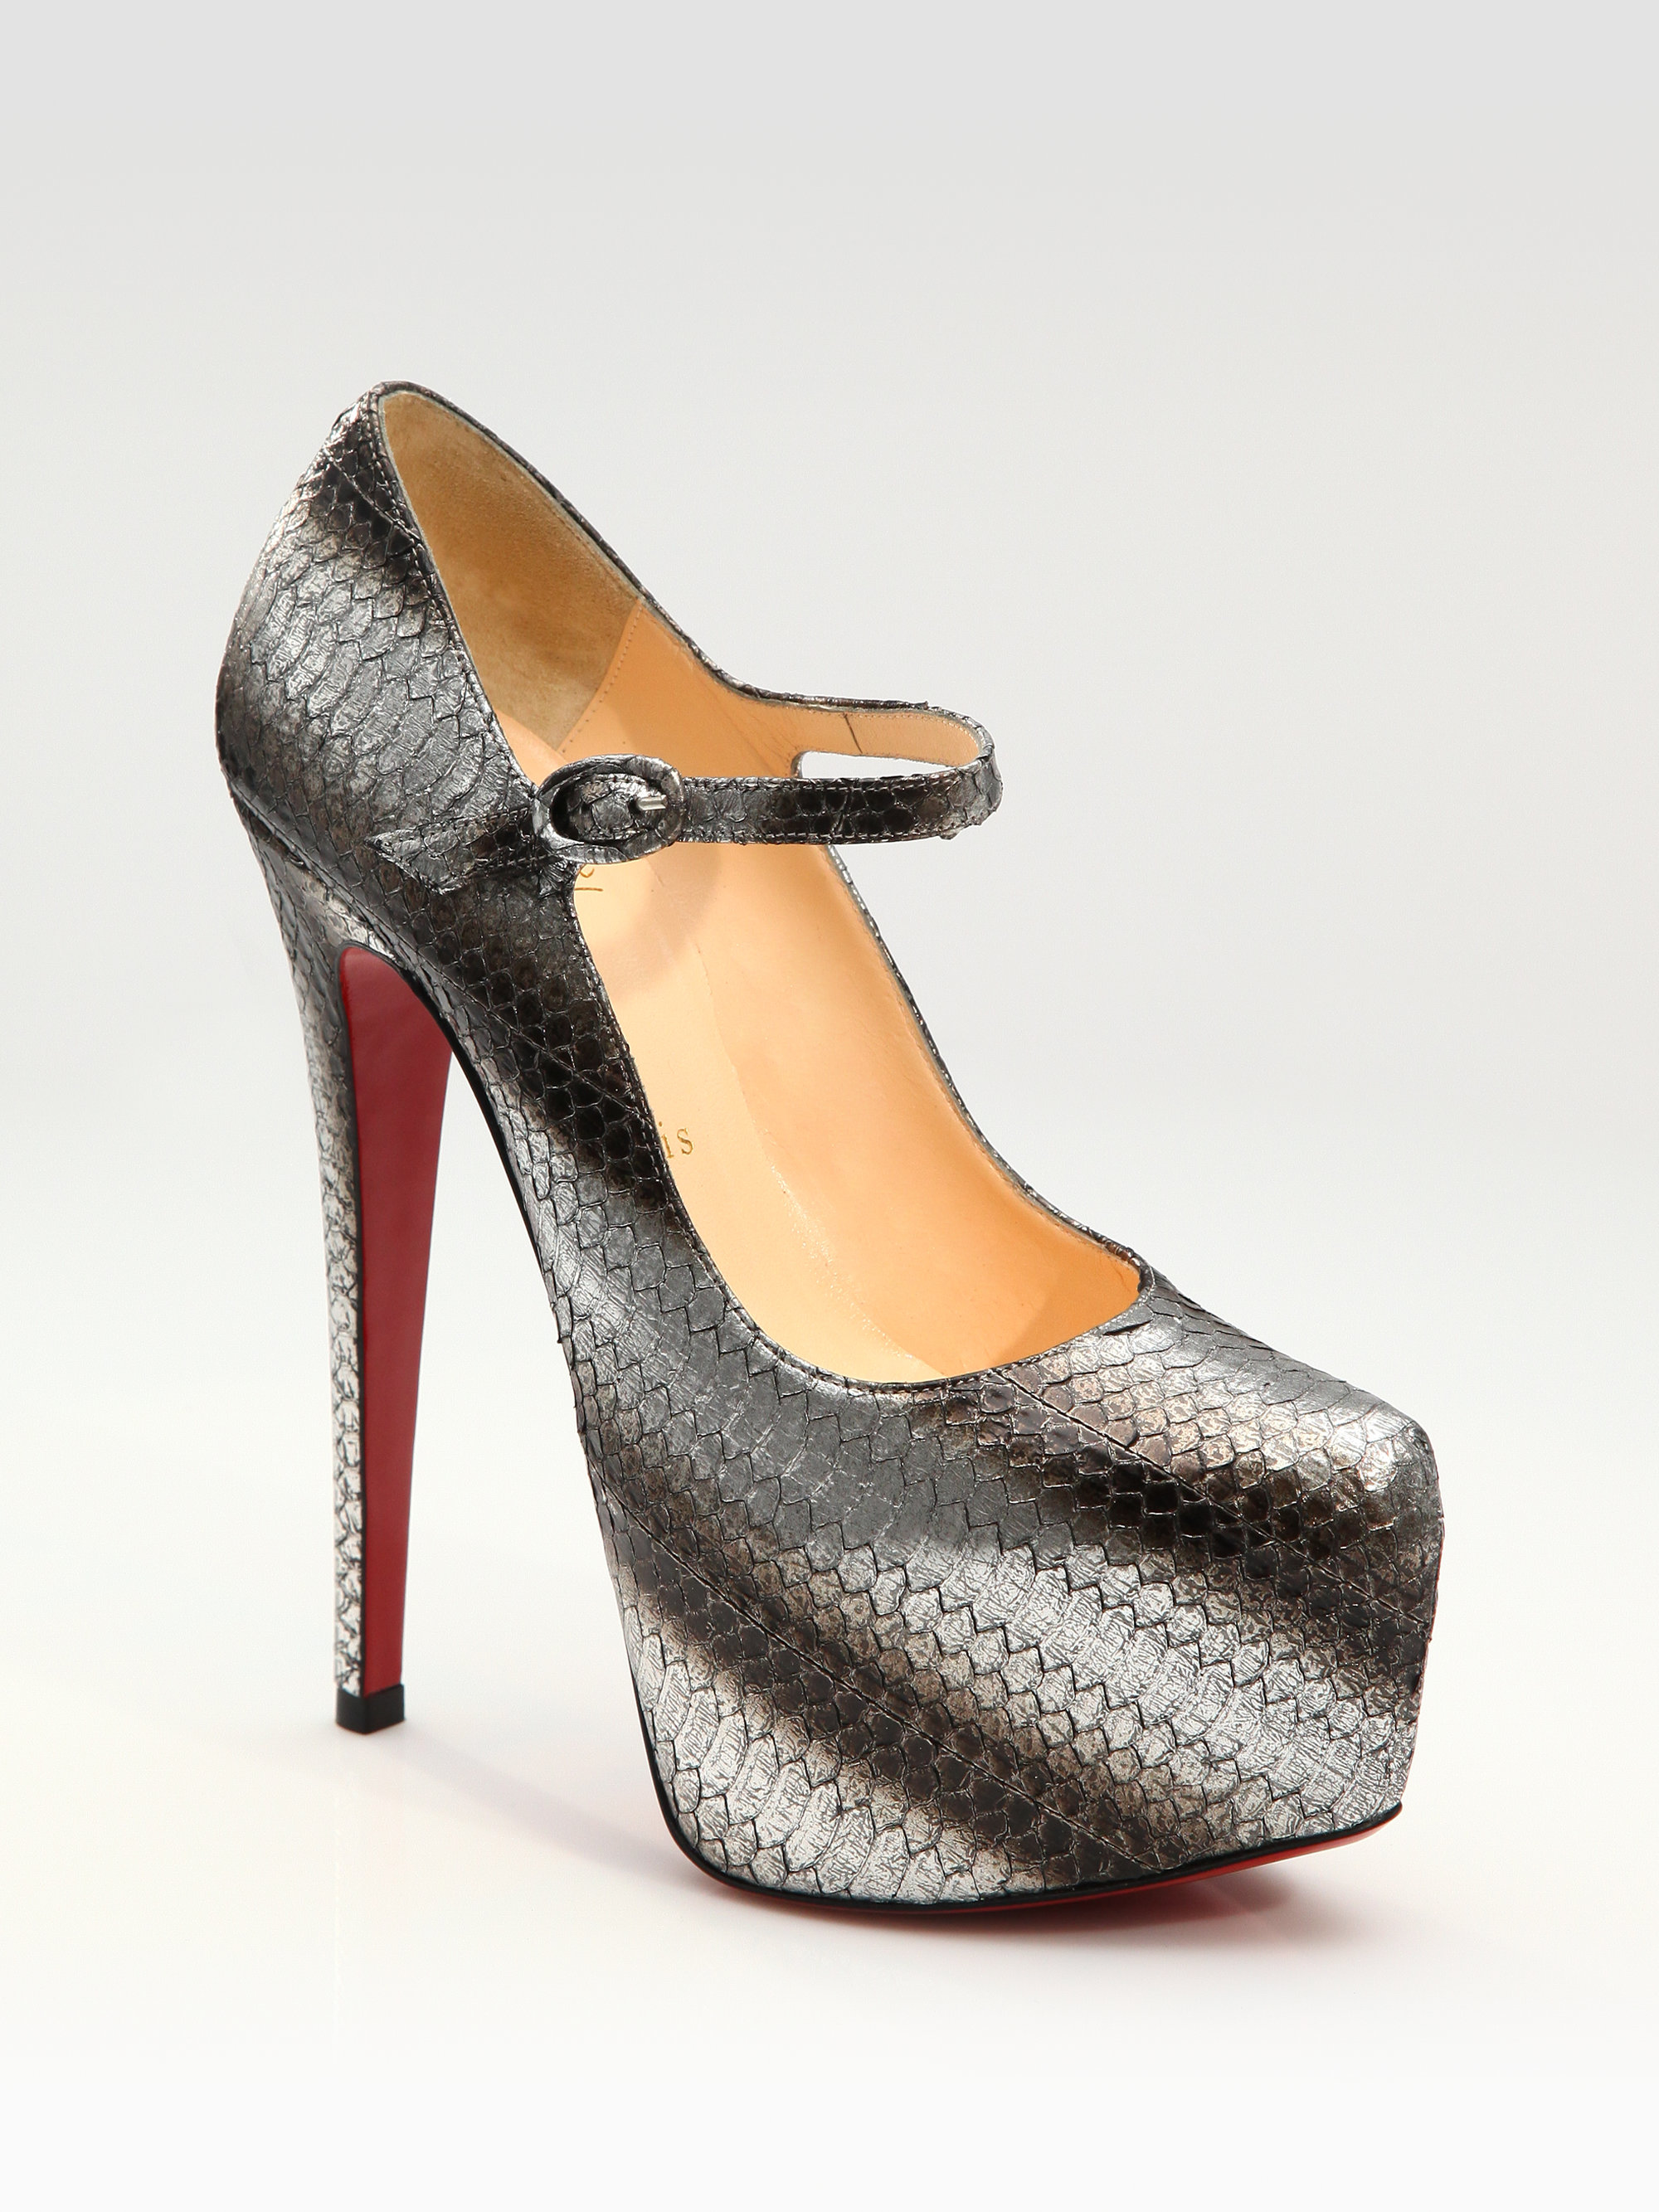 94684a77f00 Lyst - Christian Louboutin Lady Daf Snakeskin Platform Pumps in Metallic